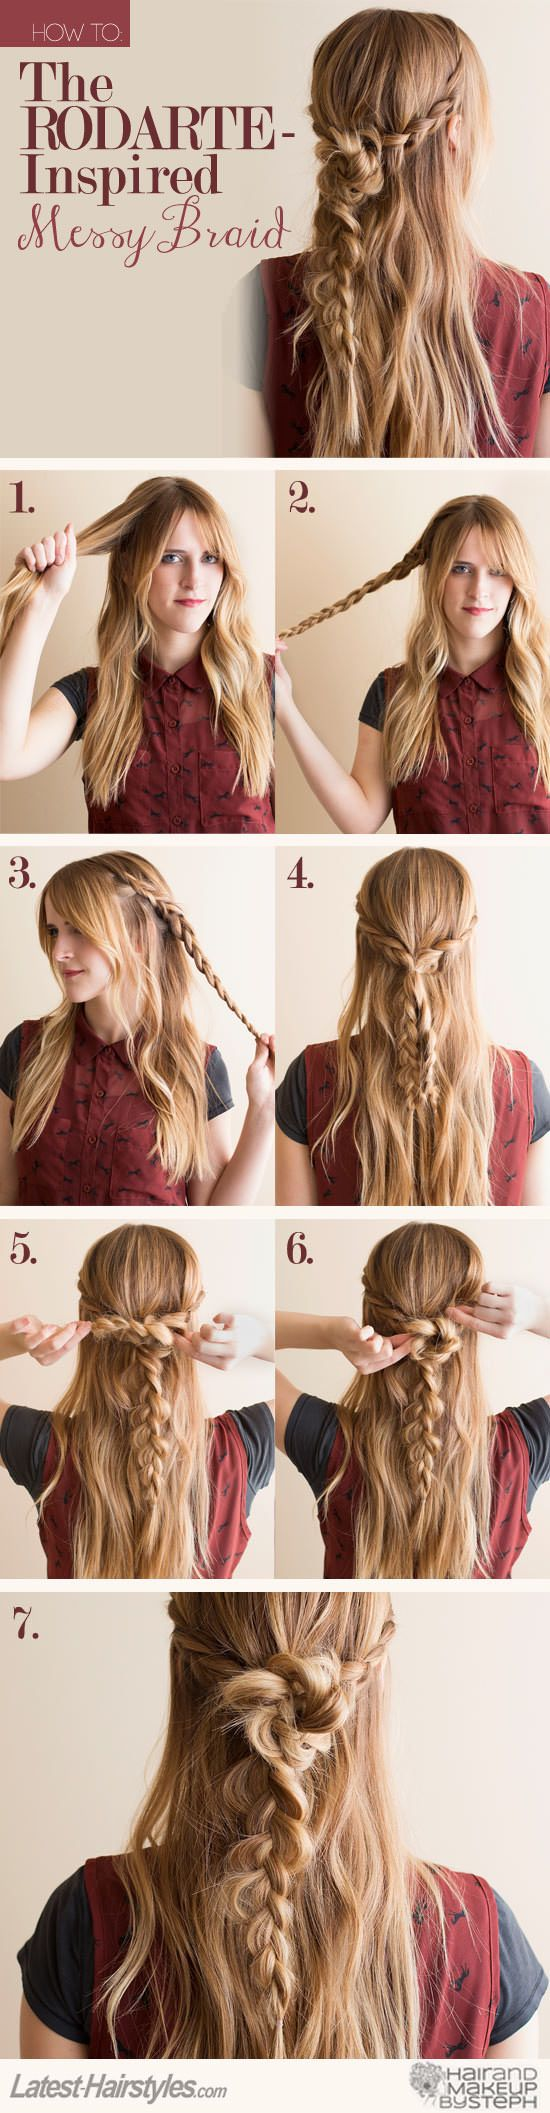 The Rodarte Inspired Messy Braid Hair Tutorial